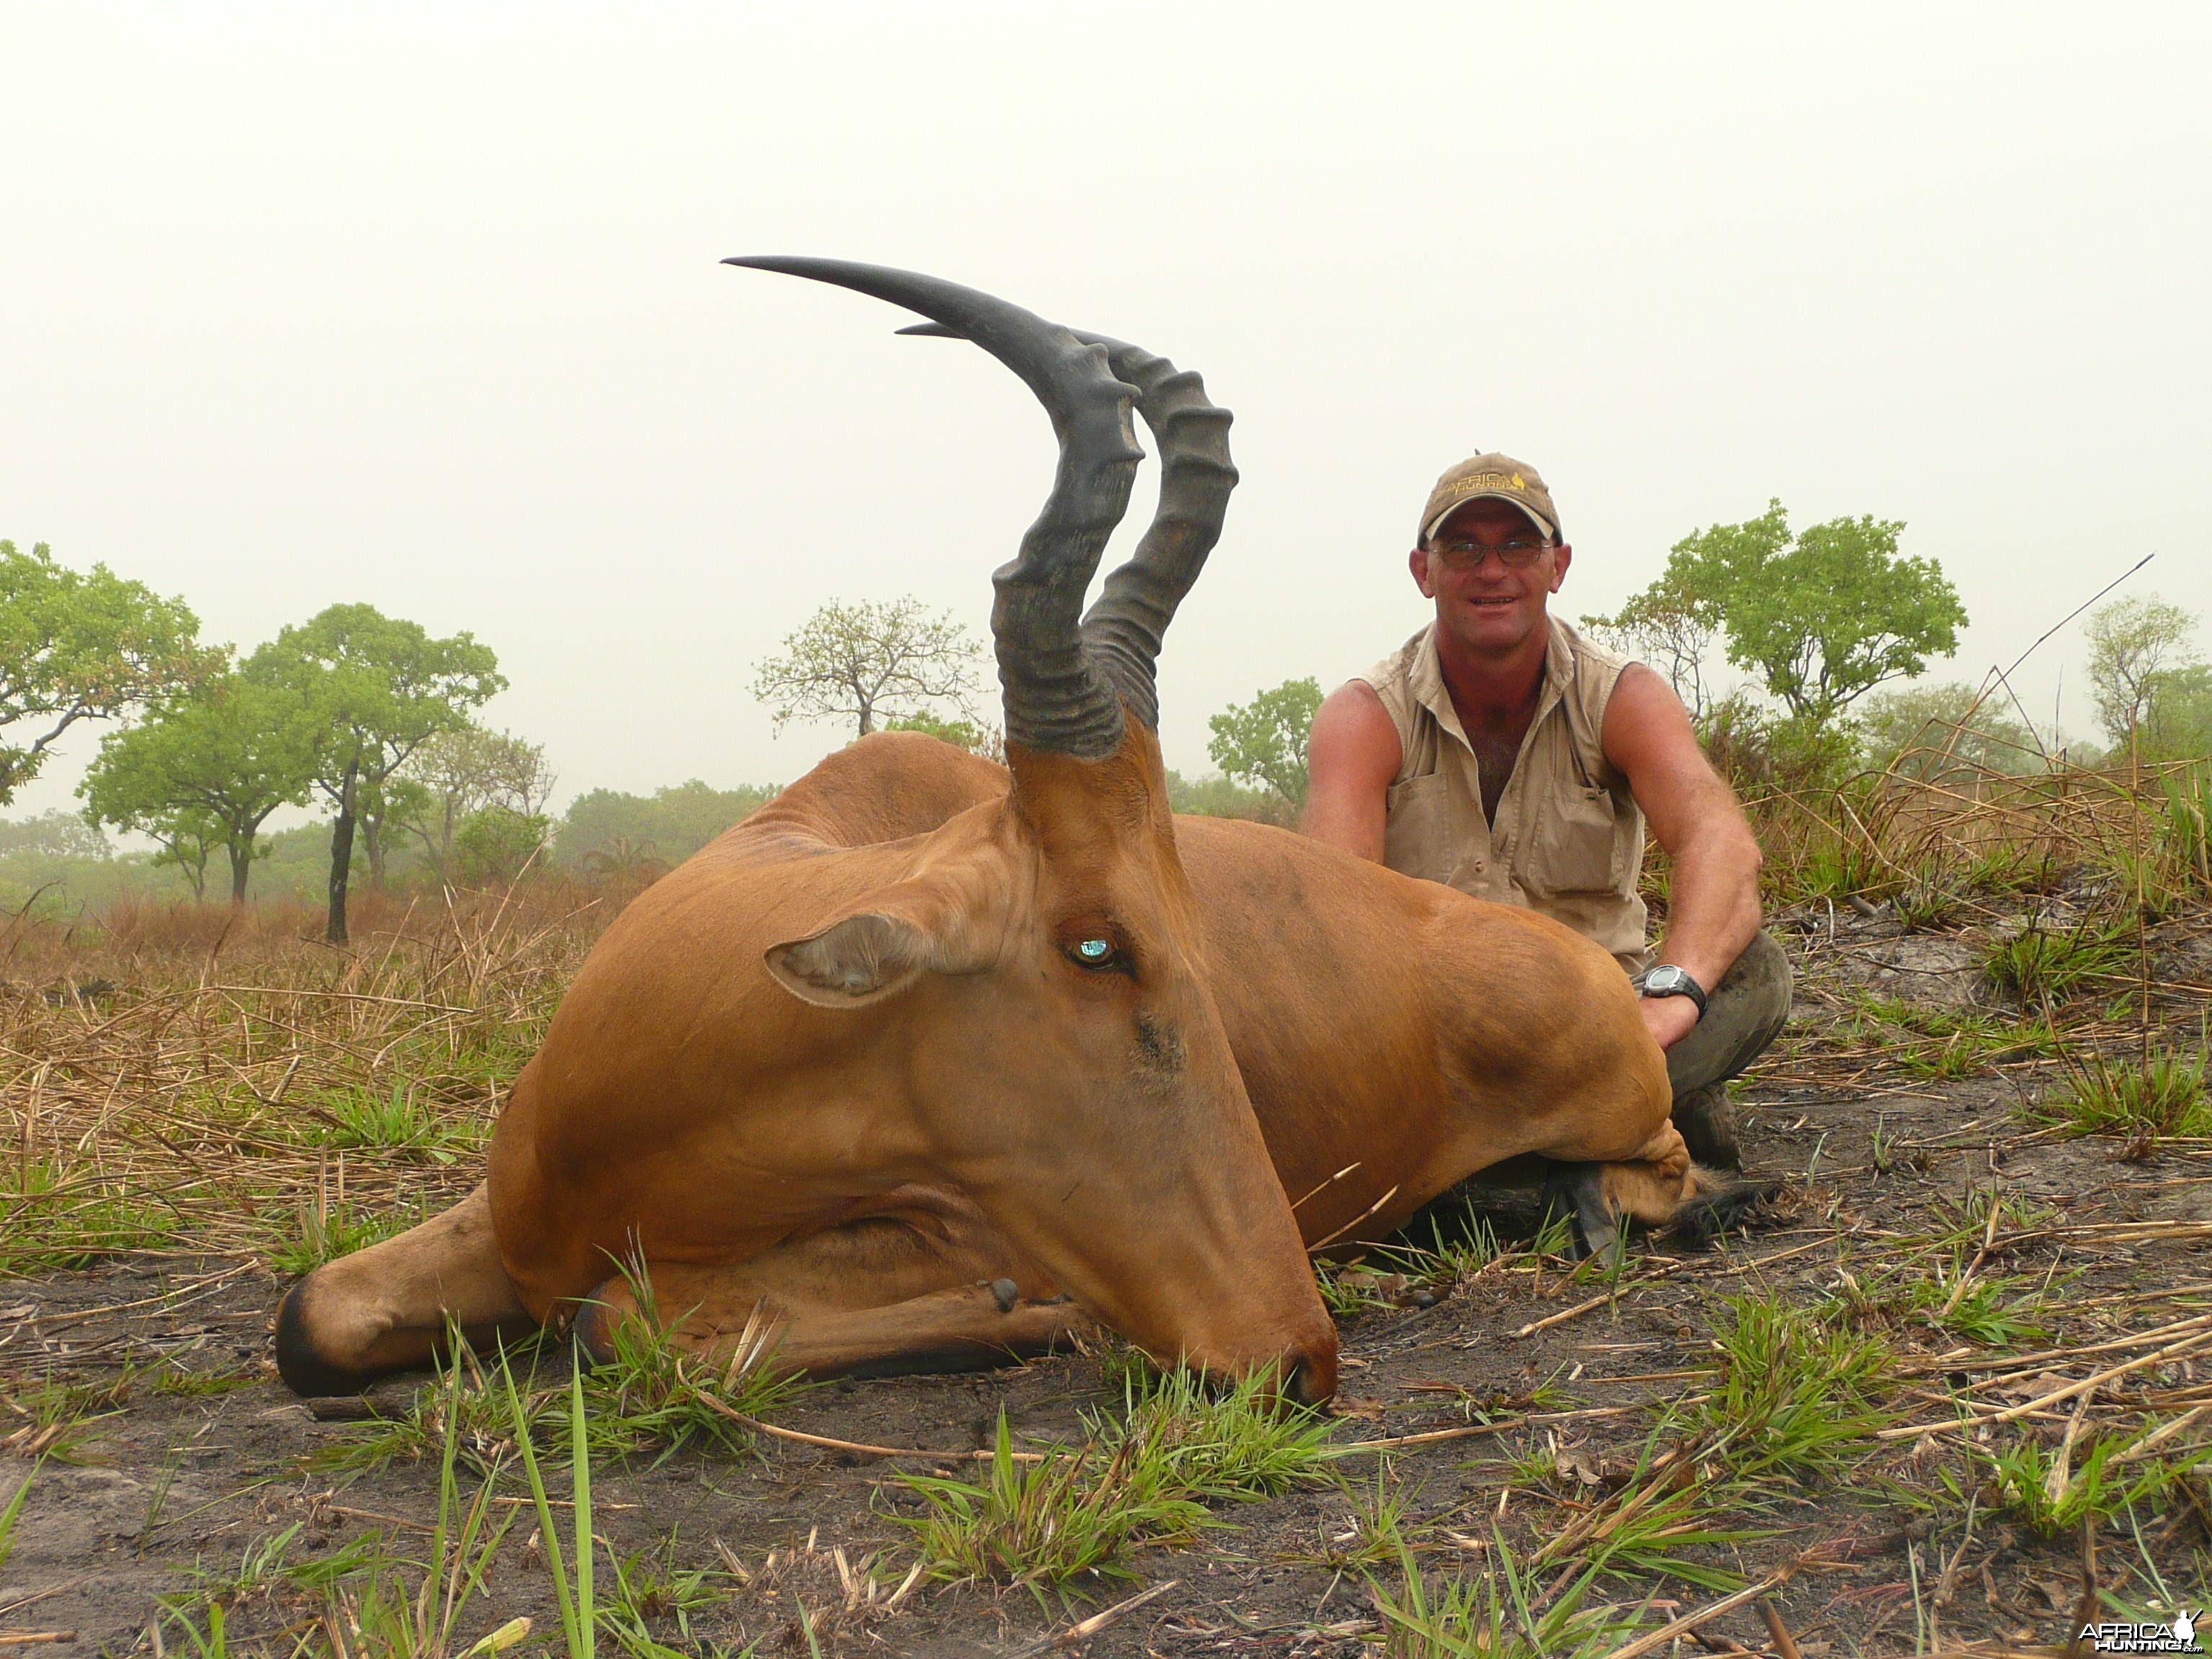 Very good 24' inches lelwel hartebeest hunted in Central African Republic